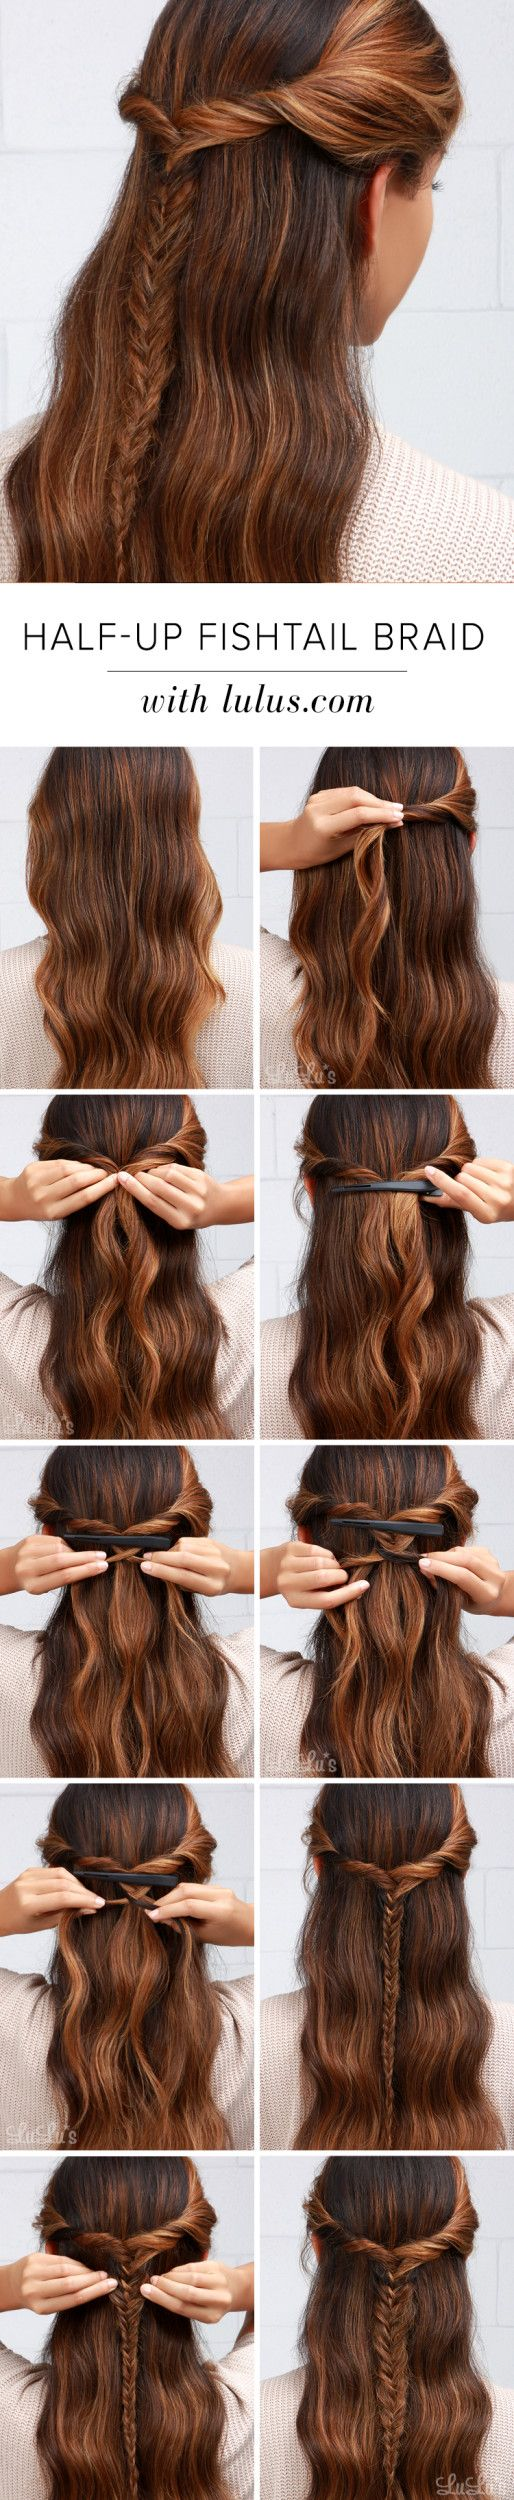 25+ Best Ideas About Easy School Hair On Pinterest  Girl Hair, Girls  Braided Hairstyles And Simple School Hairstyles